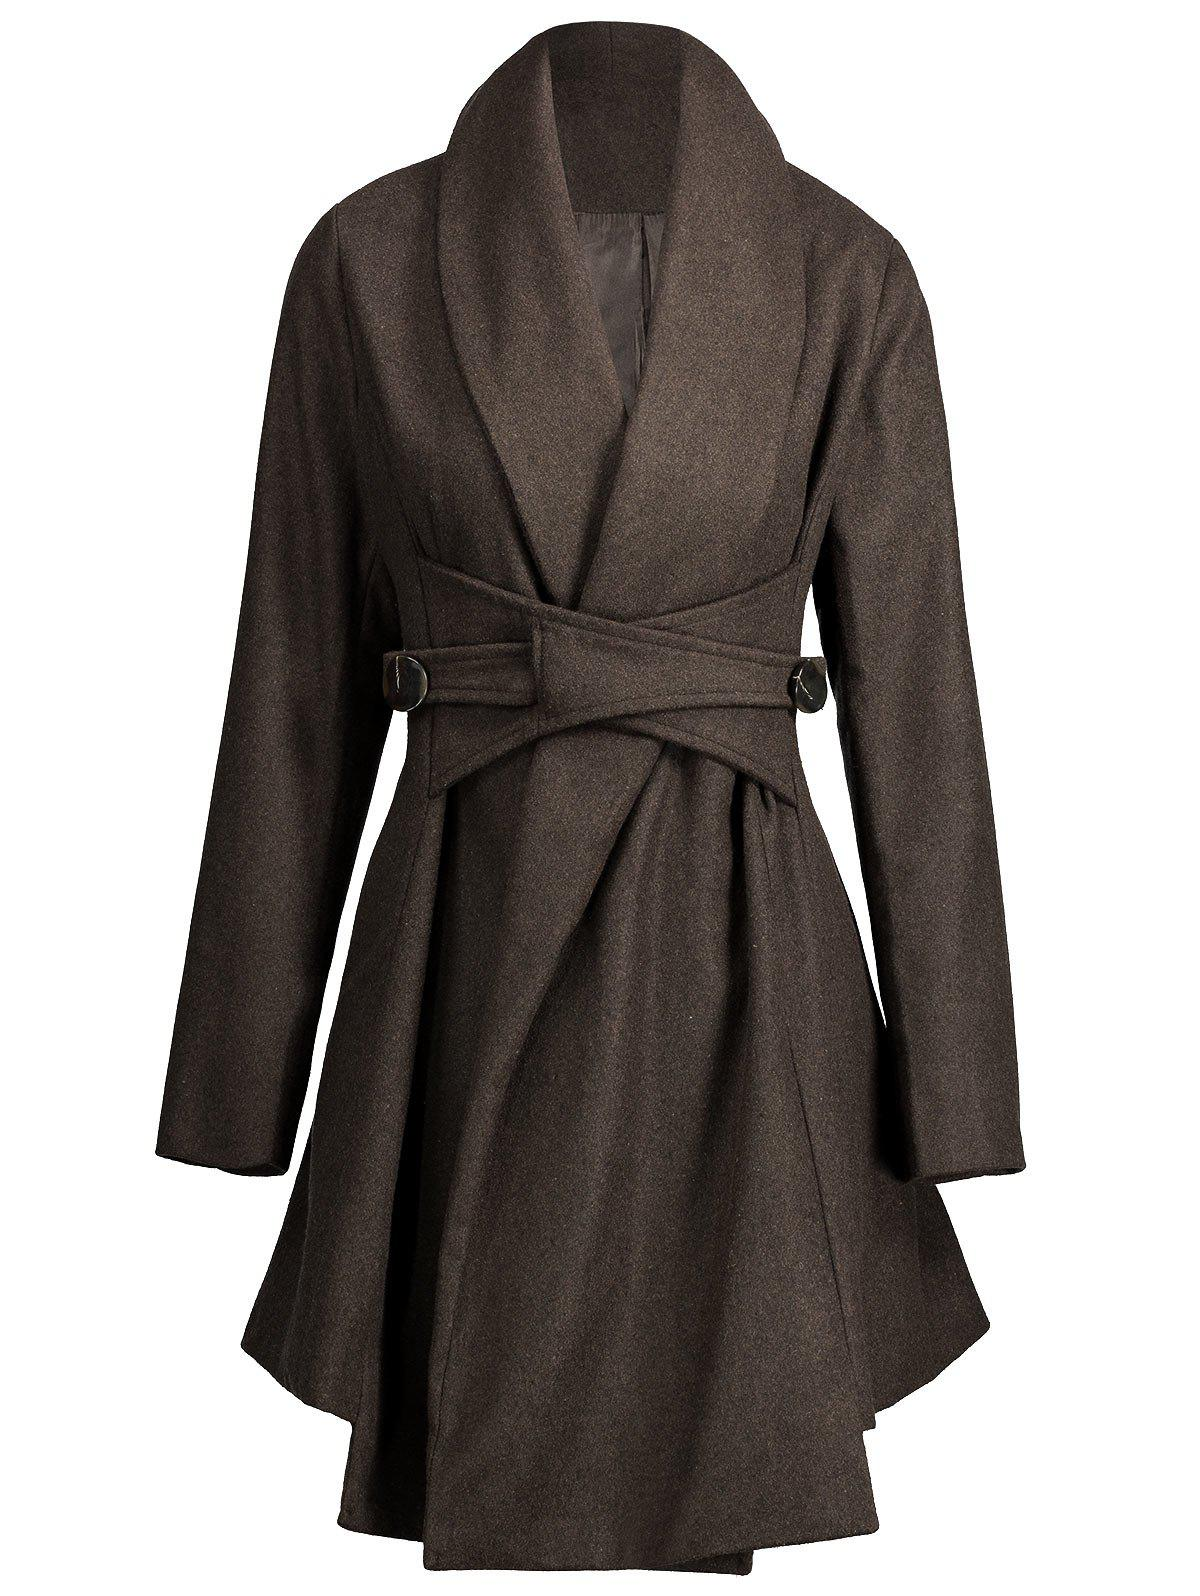 Turn Down Collar Felt Asymmetrical Coat - DARK COFFEE M